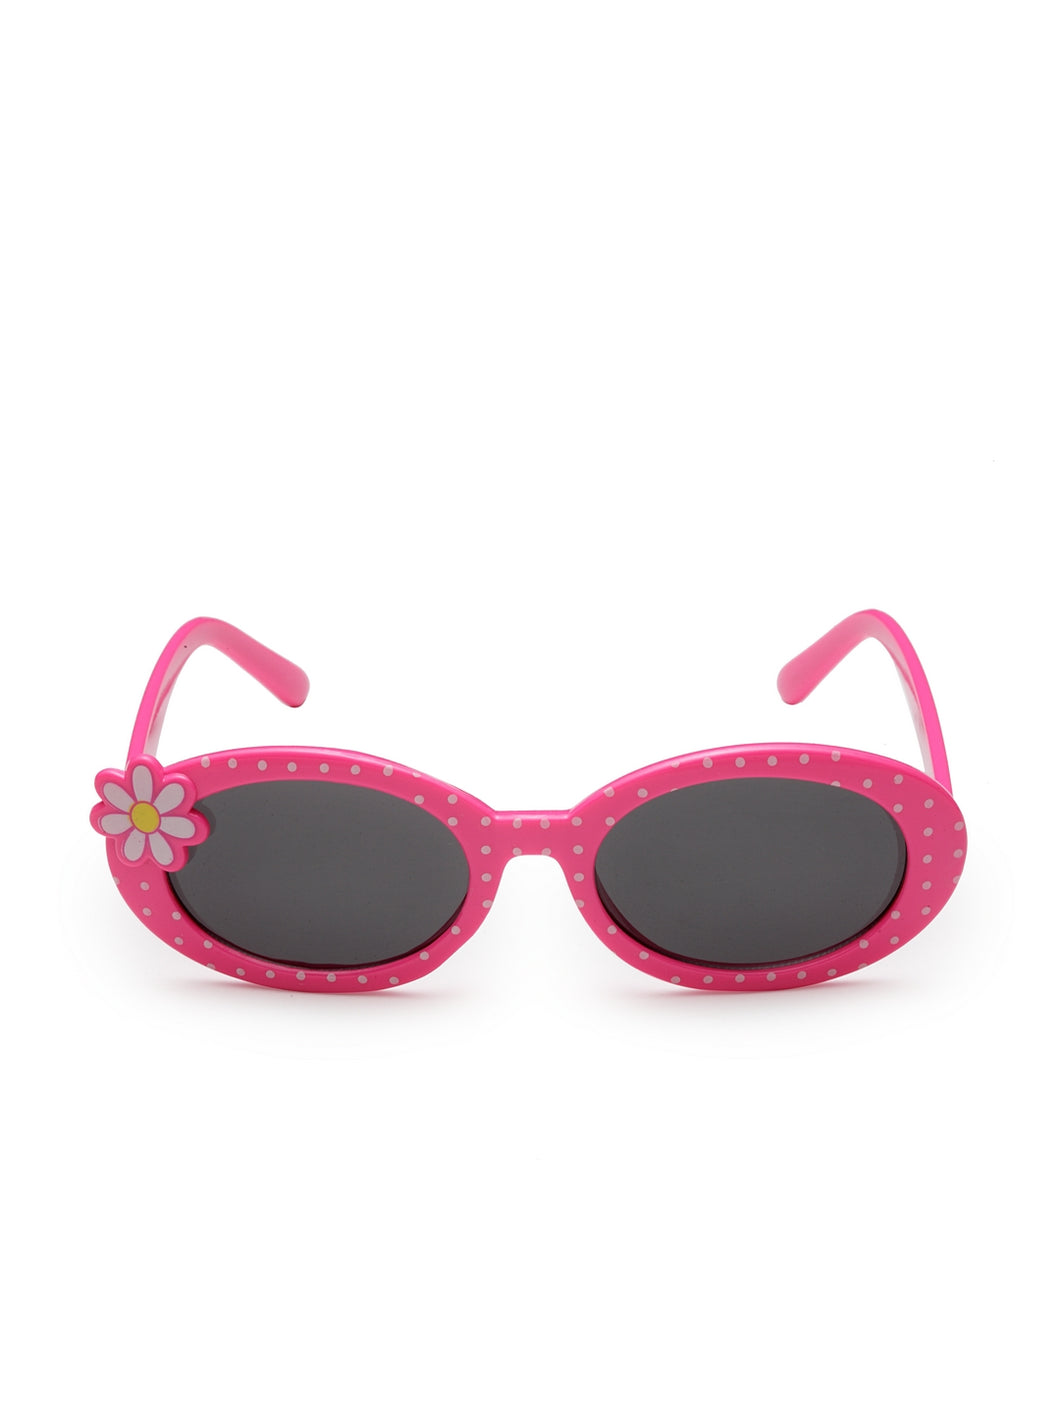 Stol'n Premium Attractive Fashionable UV-Protected Oval Shape Sunglasses - Pink